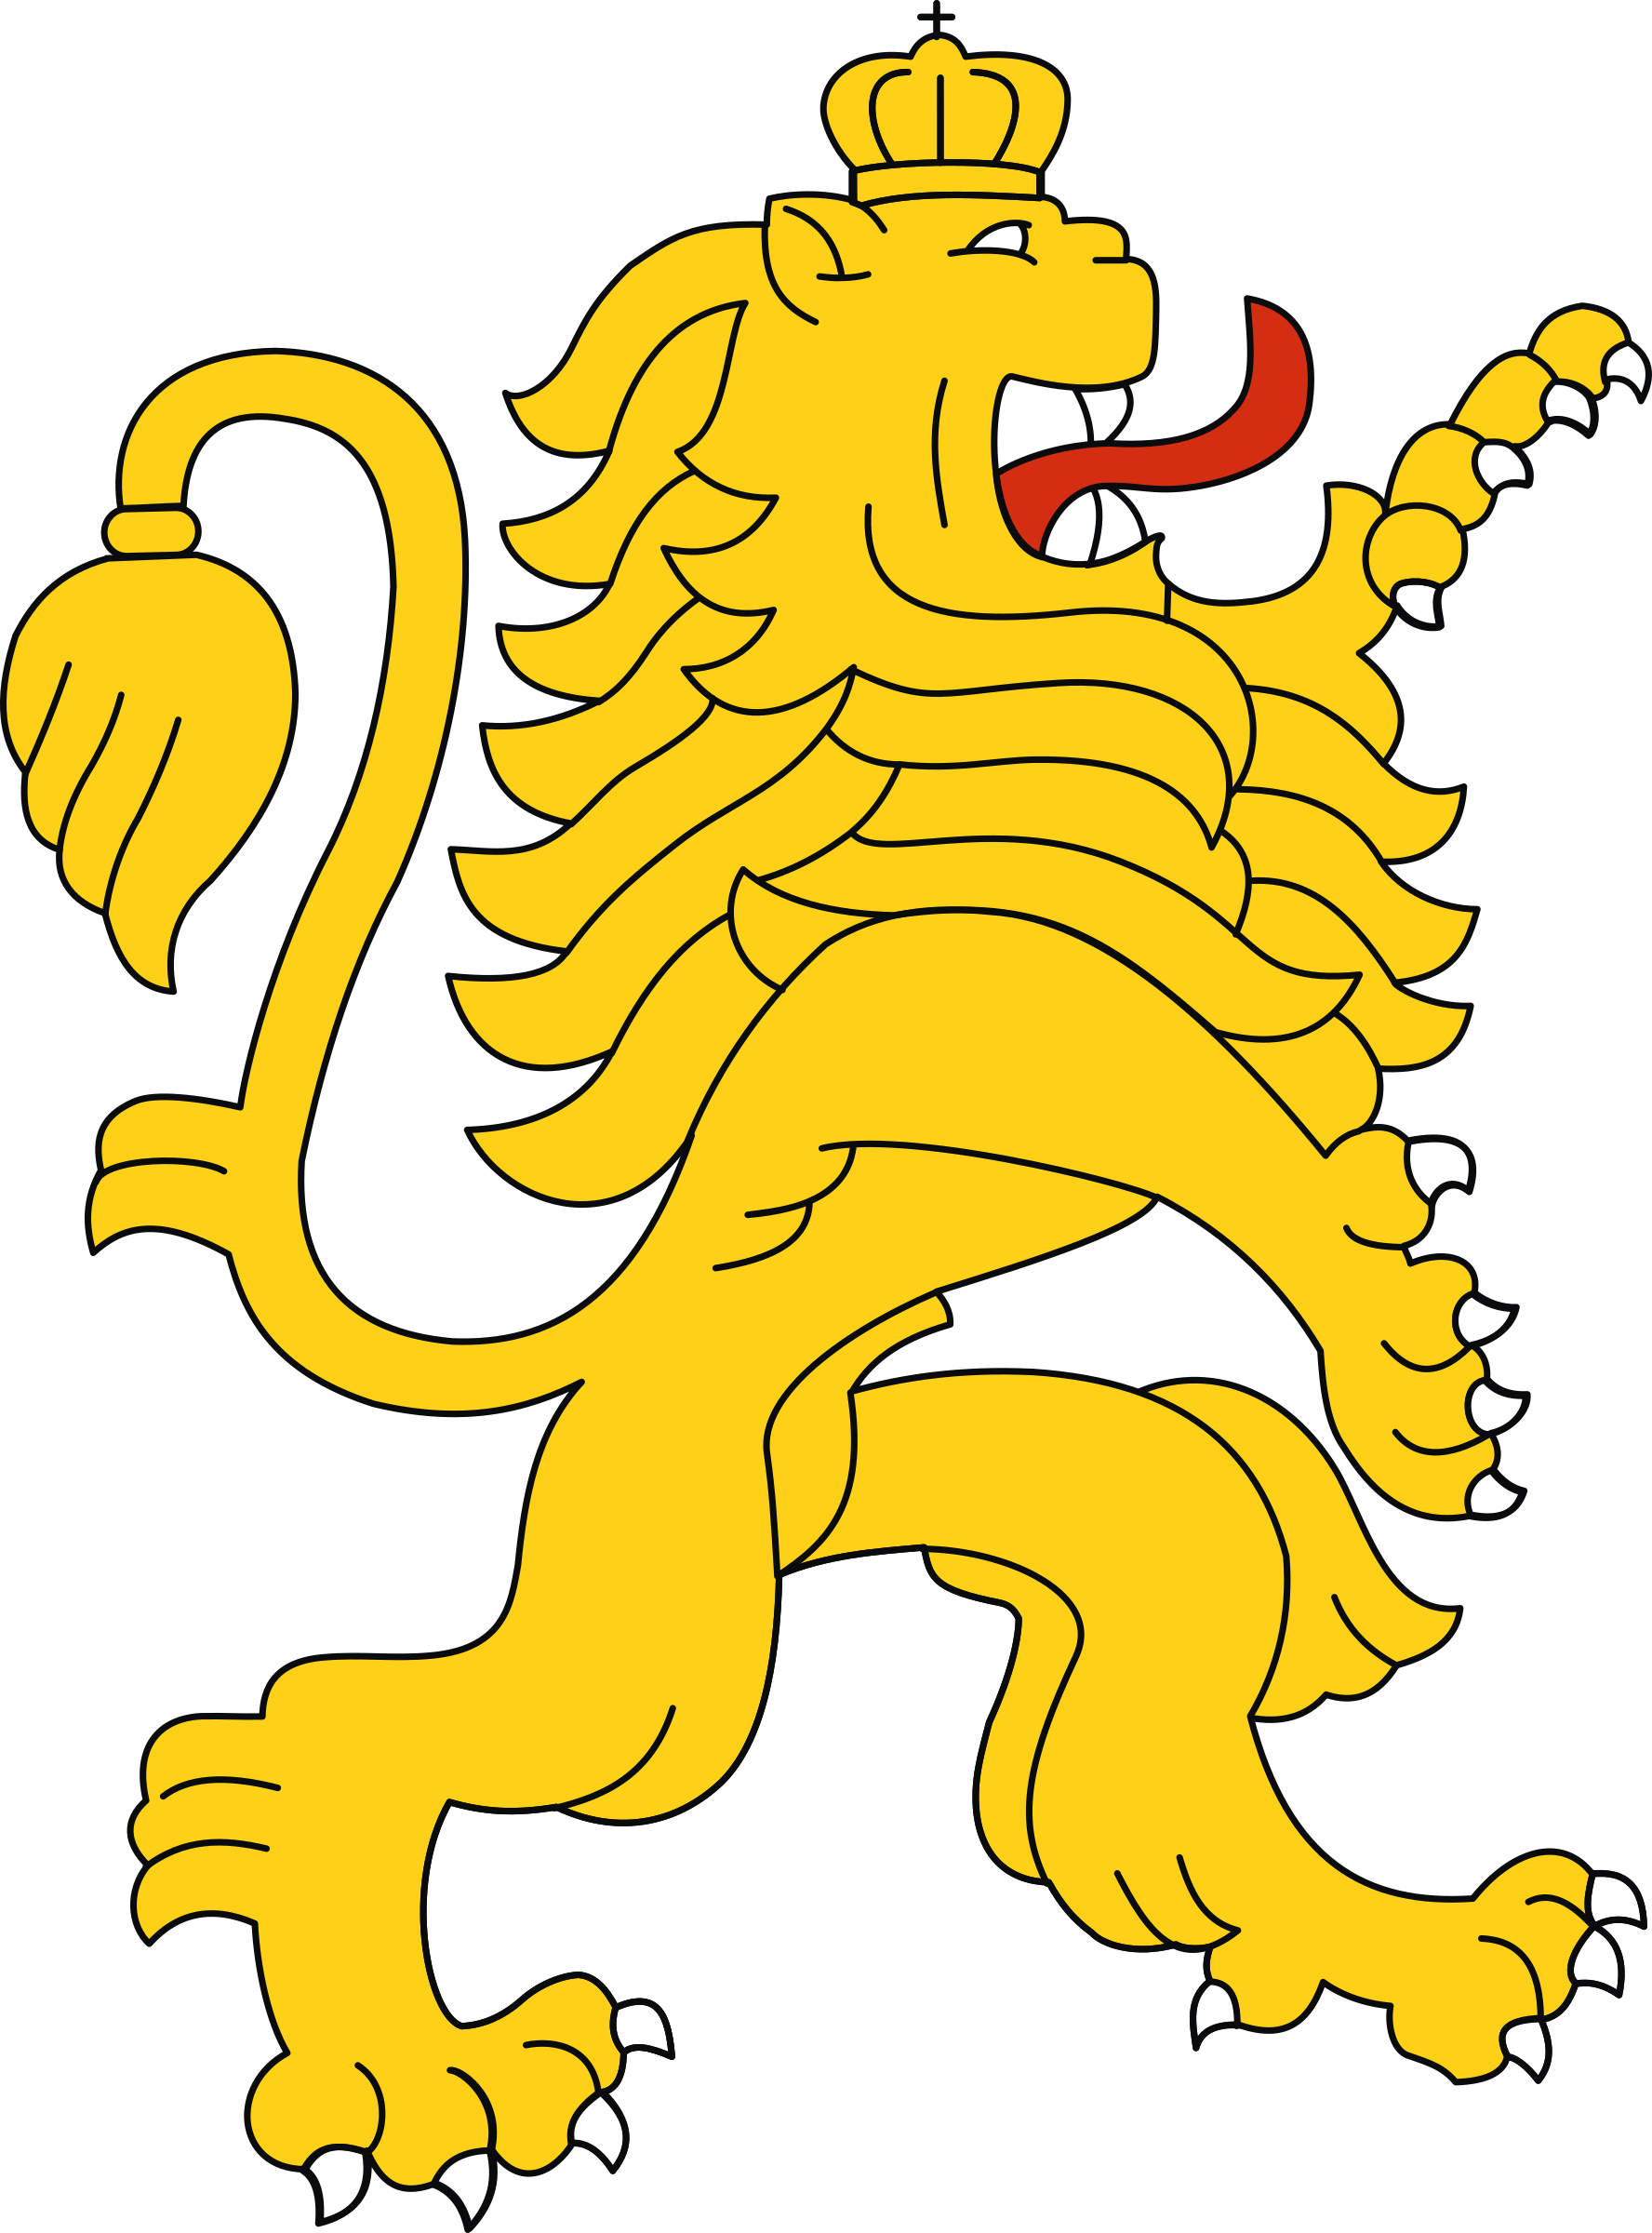 Stylised lion 4 by Firkin